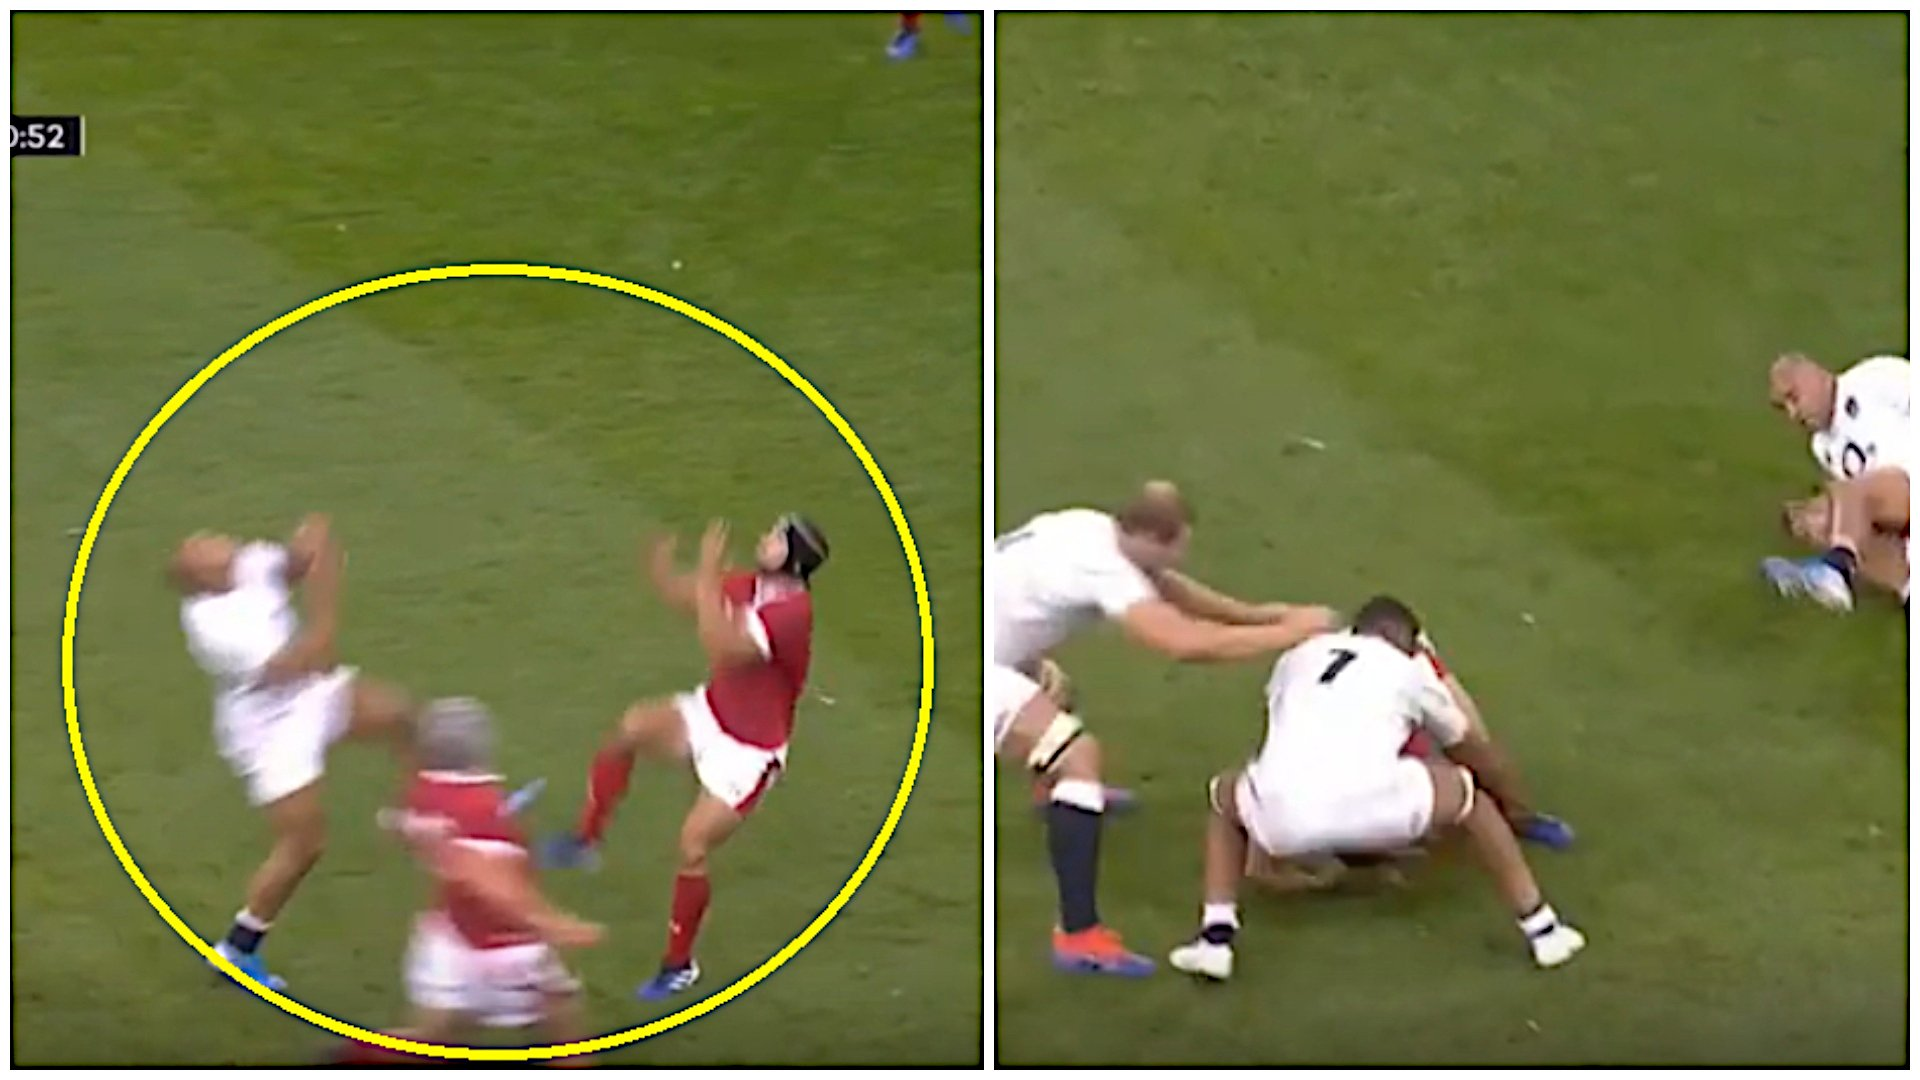 JJ and Halfpenny should both have been sent off for recklessness